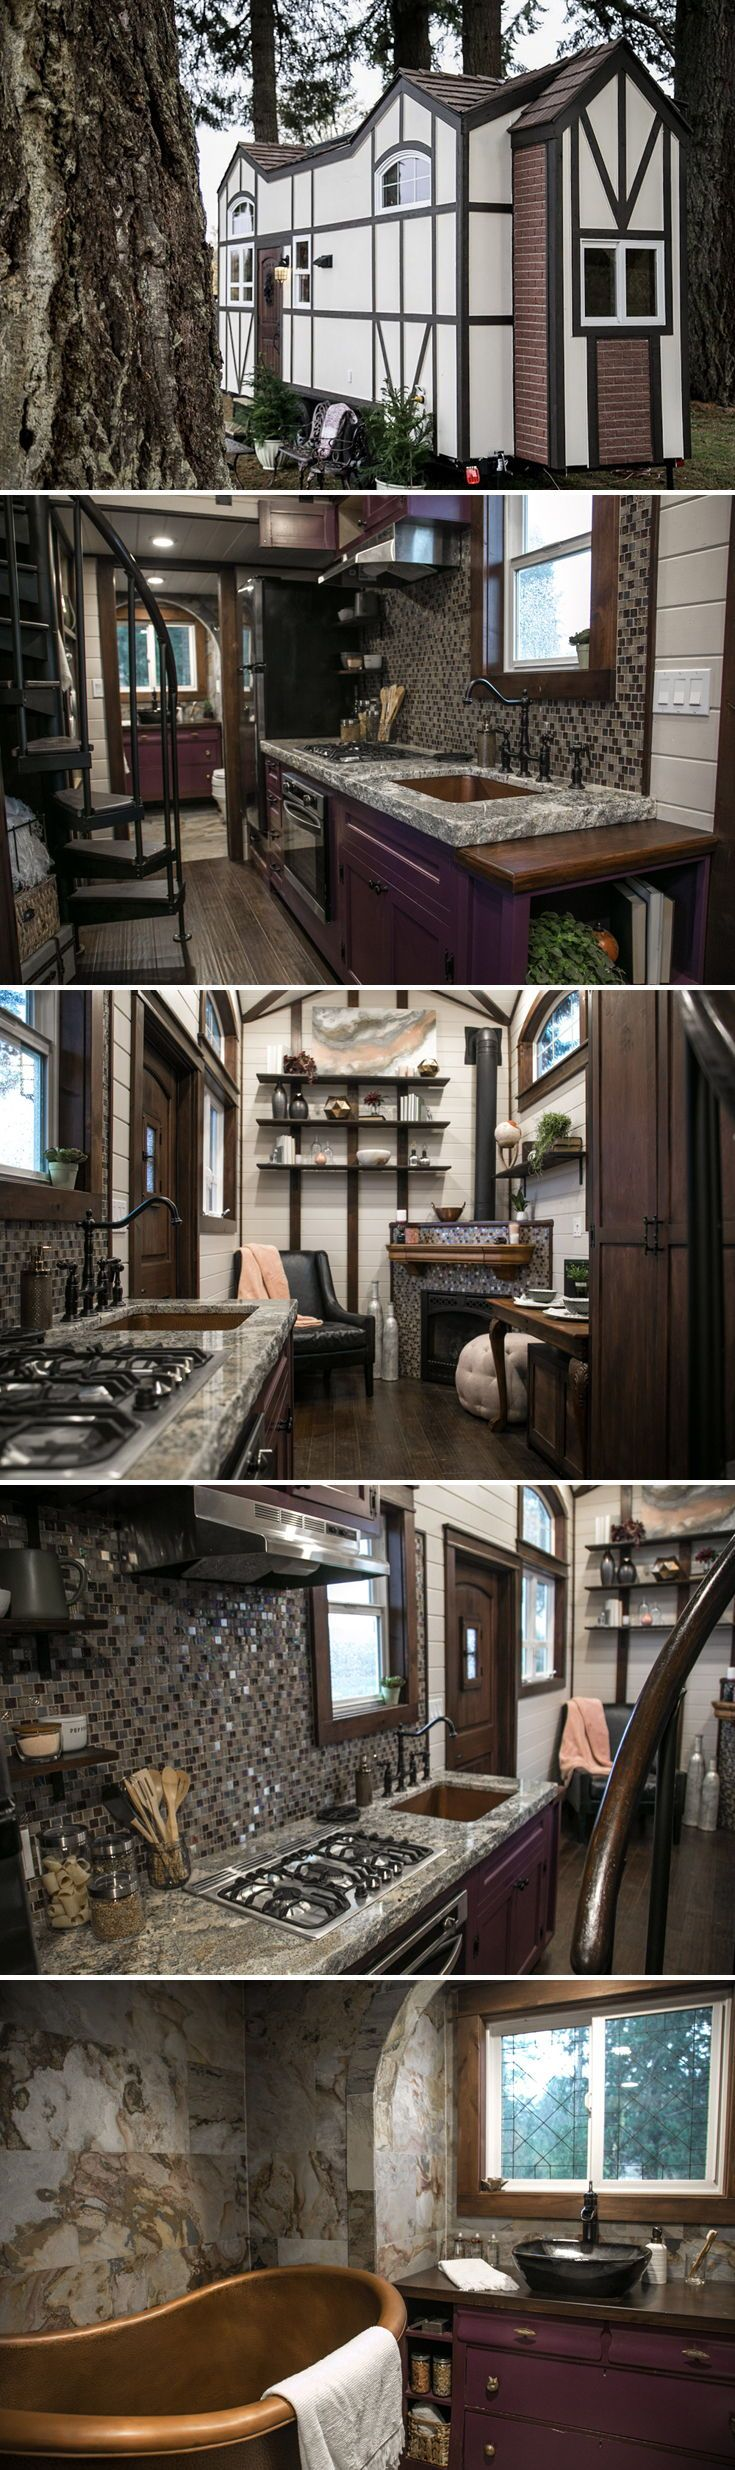 Tudor House By Tiny Heirloom Tiny House Living Tiny